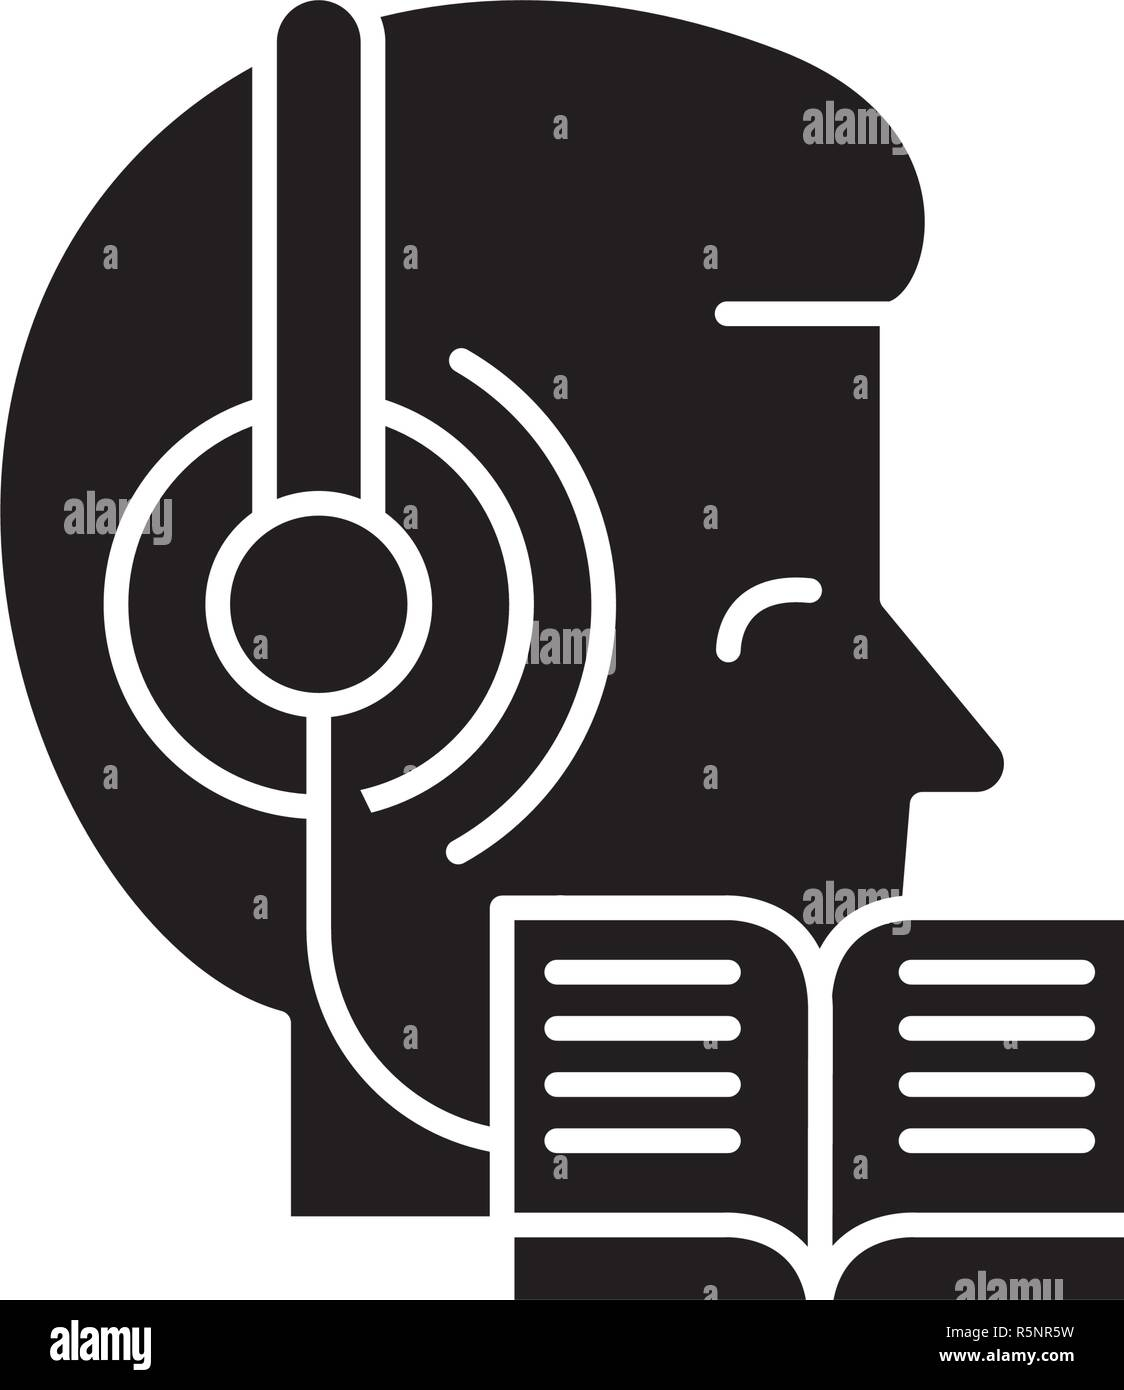 Listening to music and reading black icon, vector sign on isolated background. Listening to music and reading concept symbol, illustration  - Stock Vector